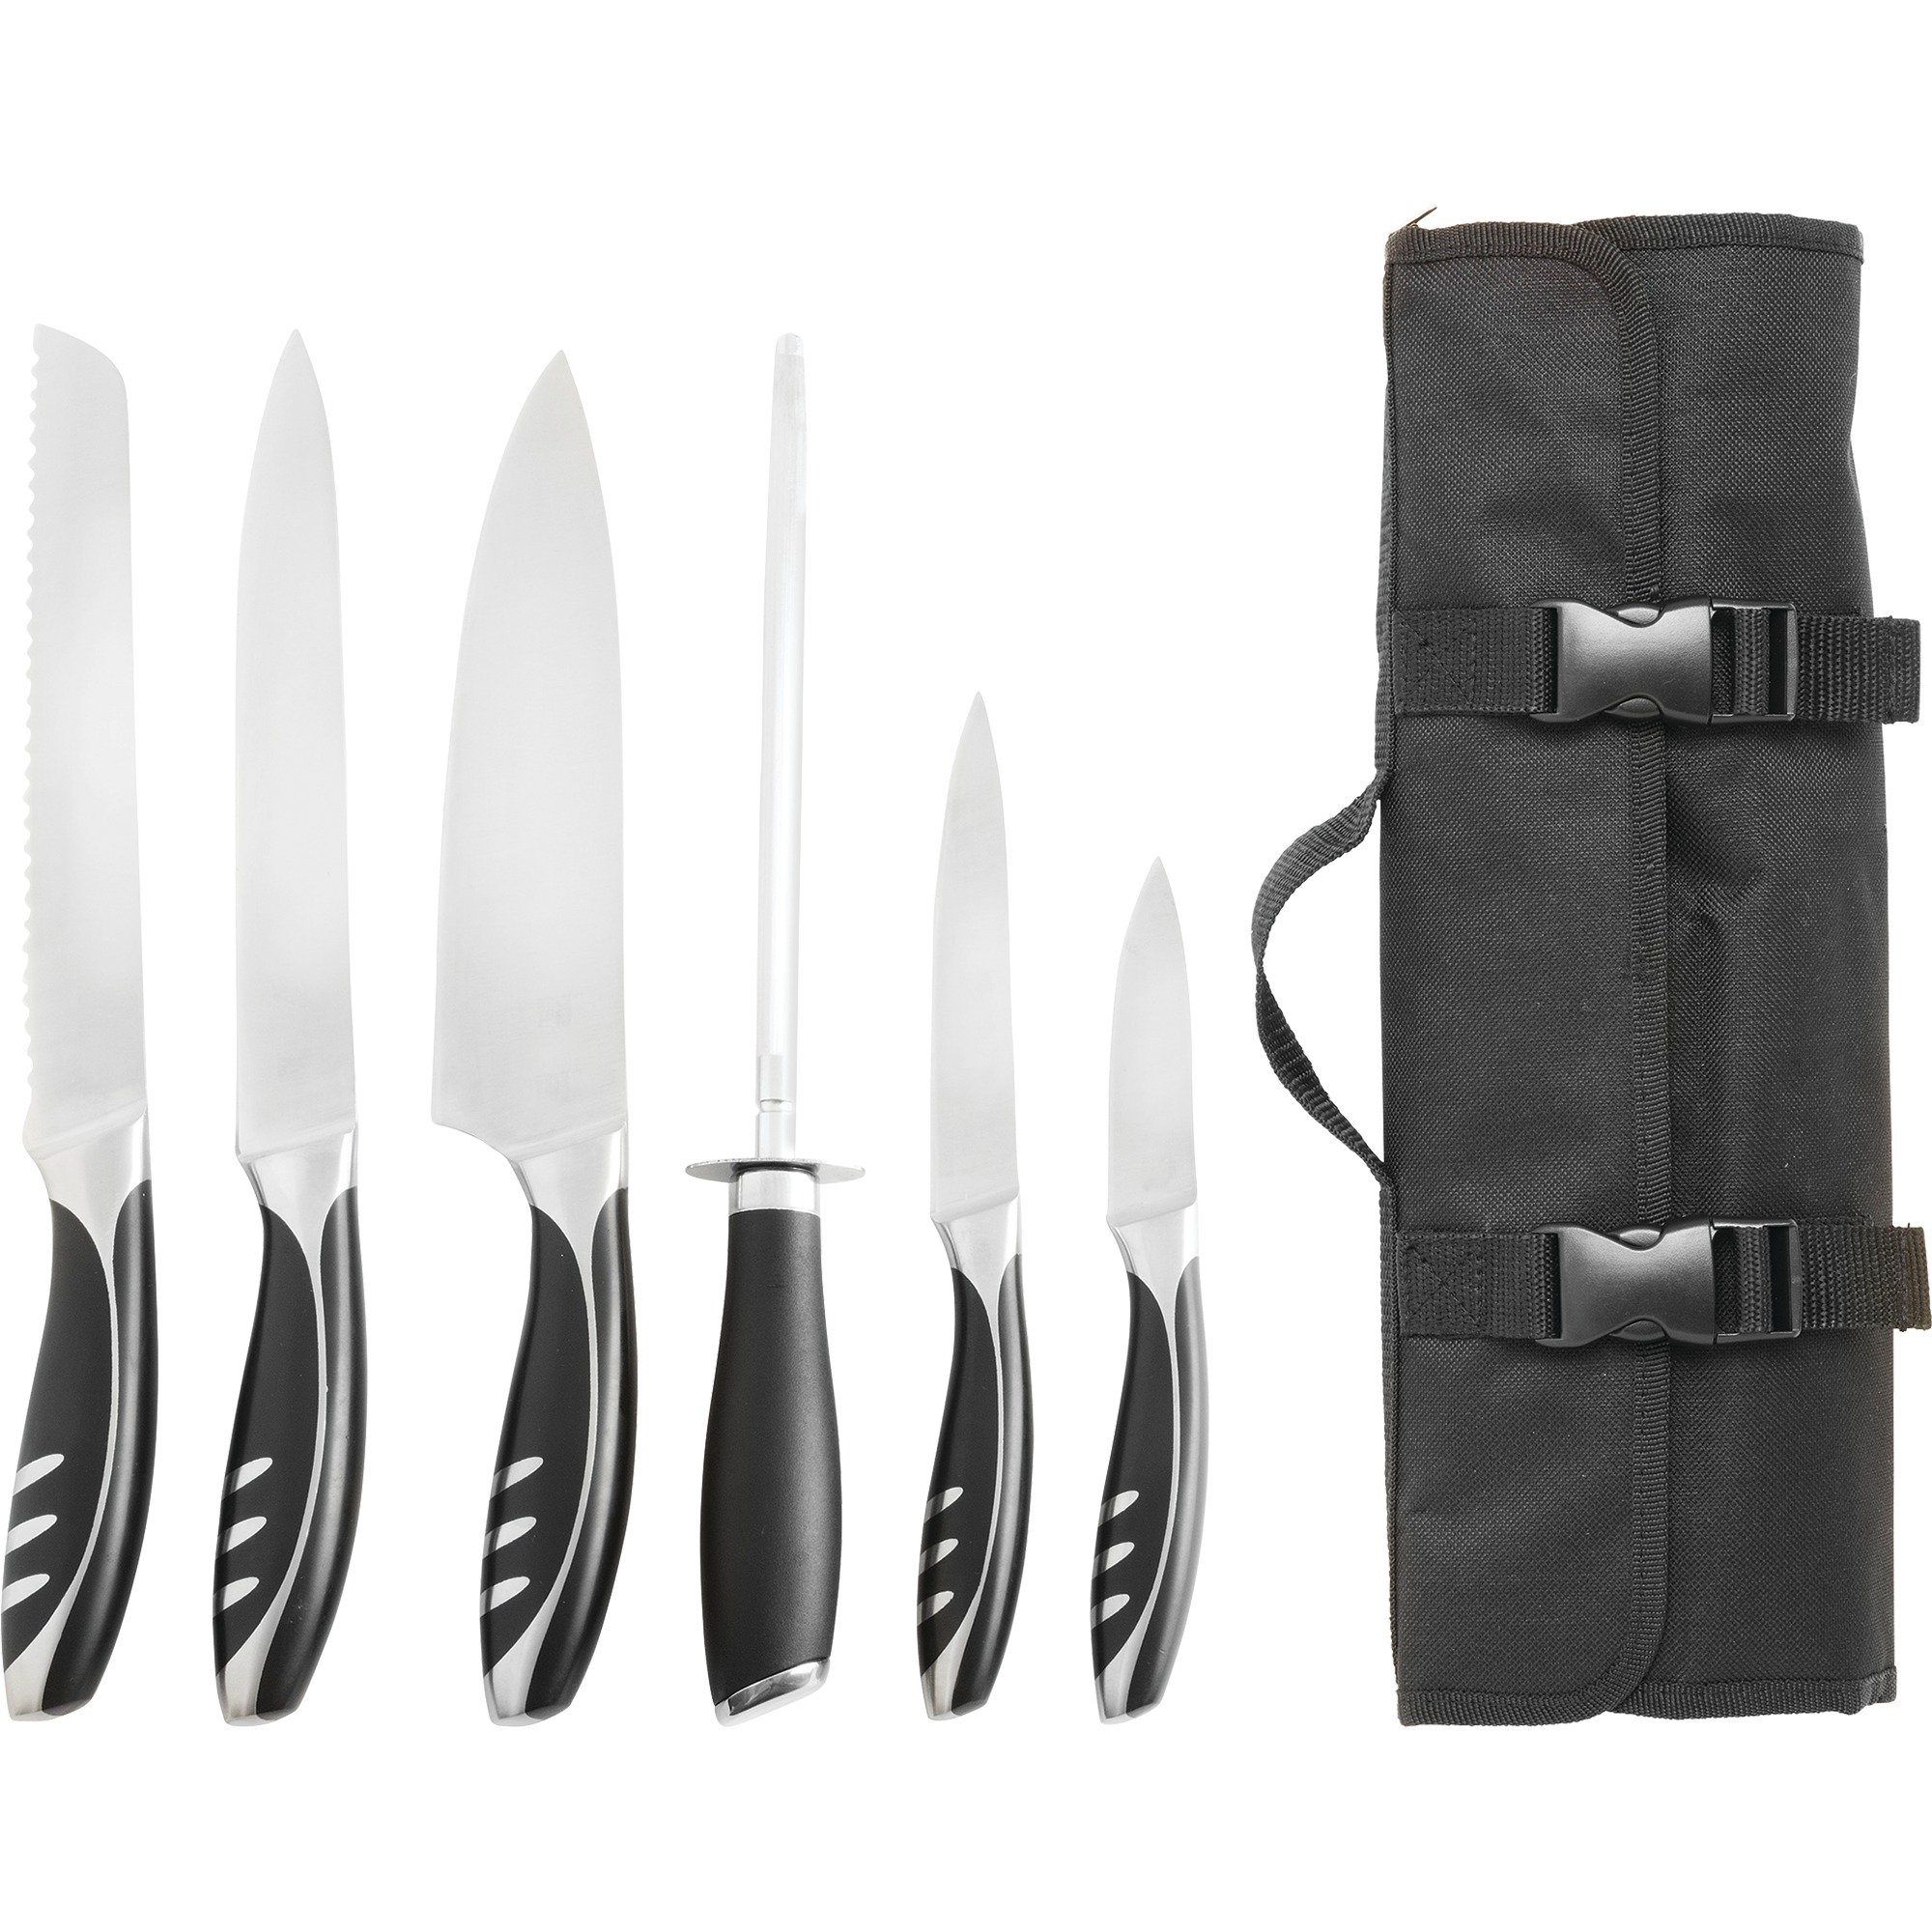 Slitzer Germany 7pc Chef's Cutlery Set